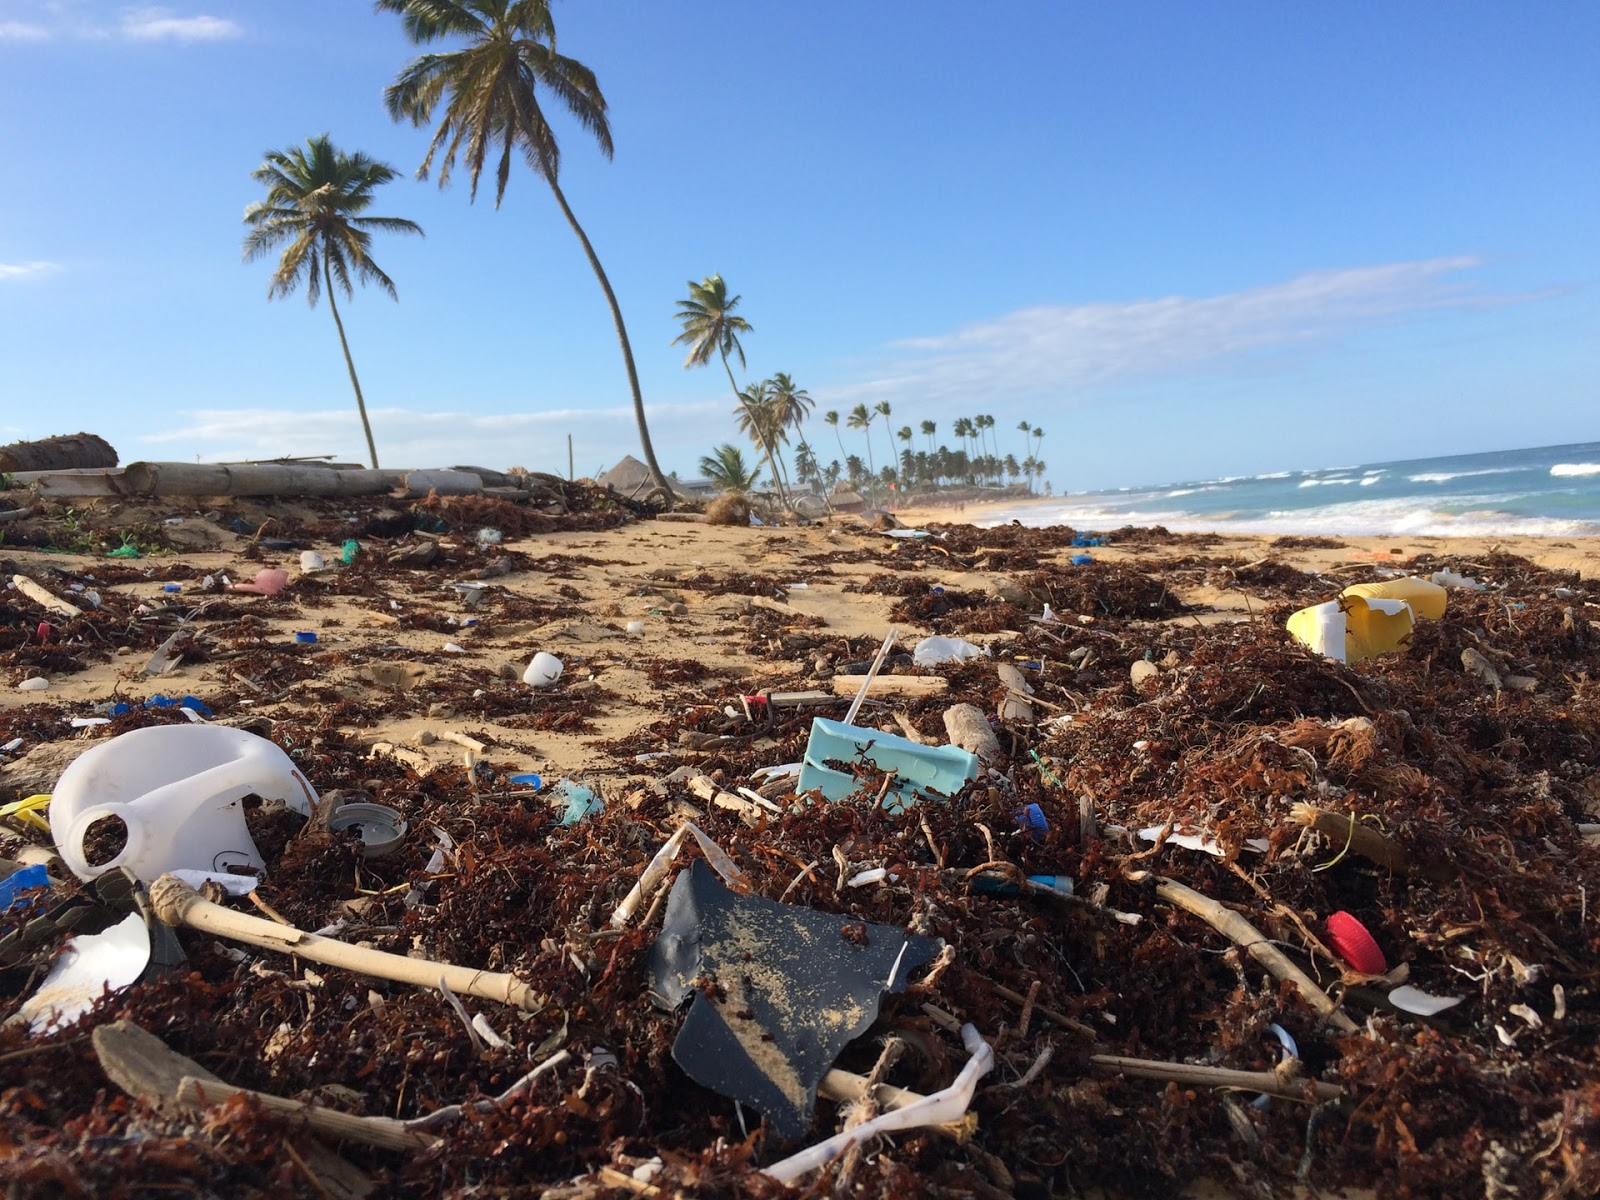 beaches covered in trash